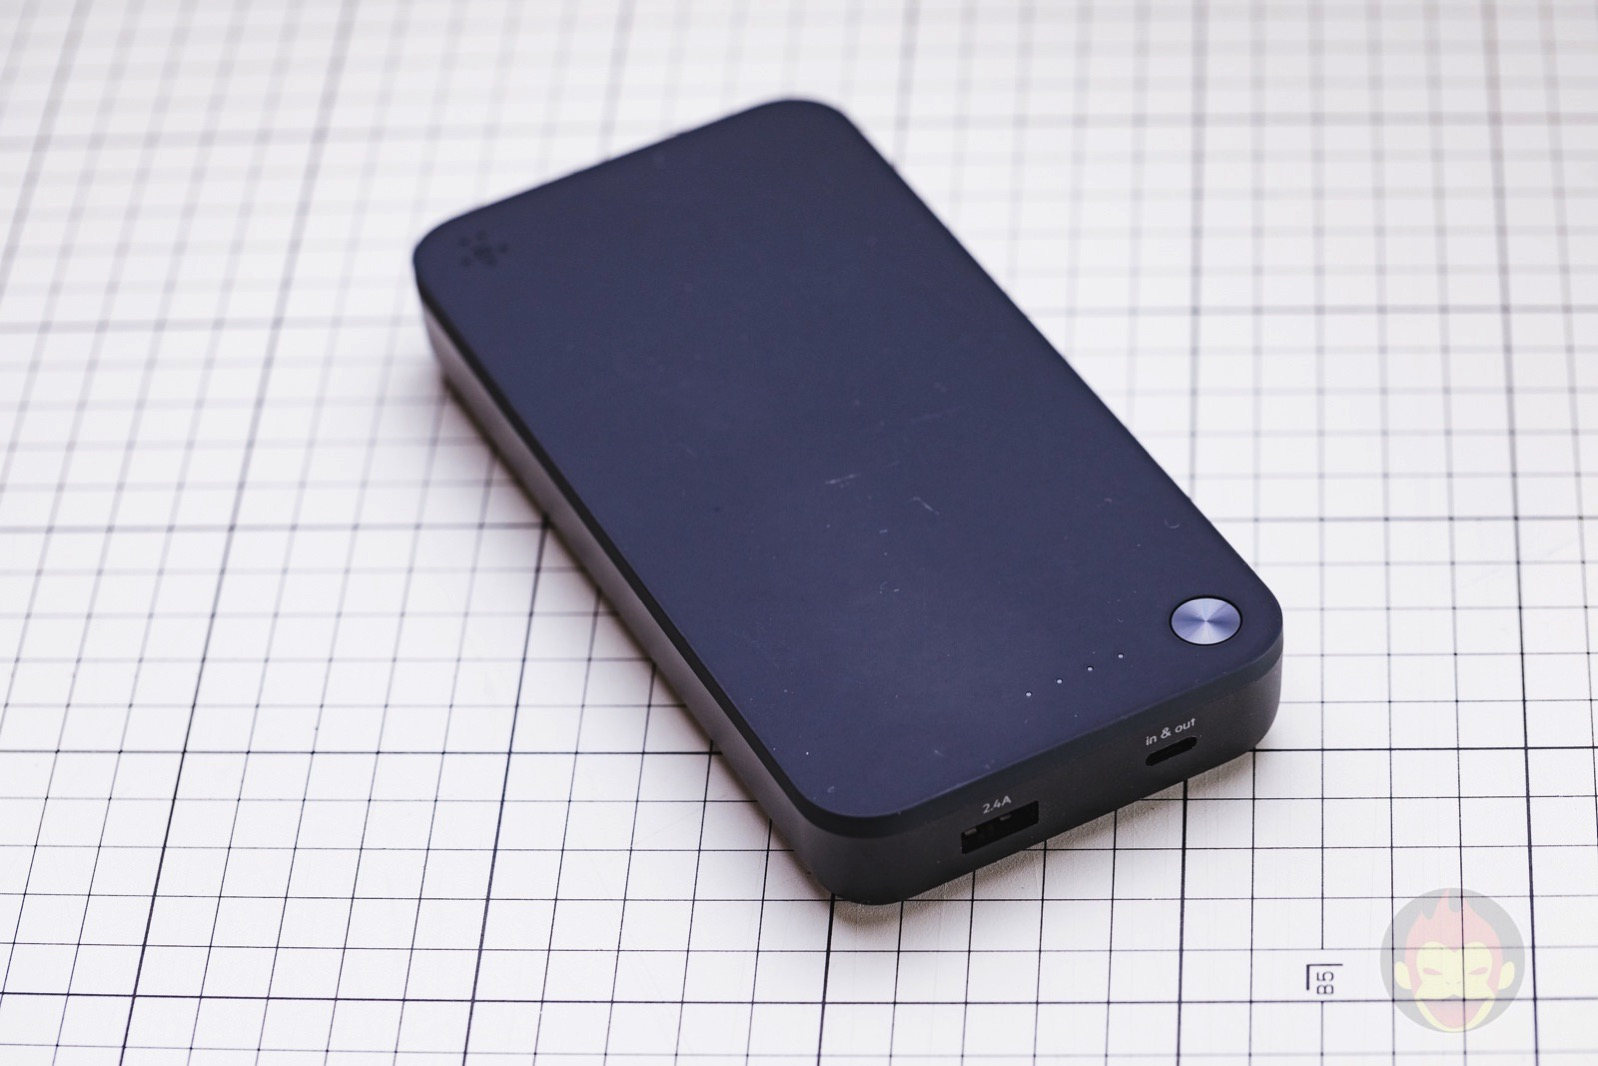 Belkin-Boost-Charge-Mobile-Battery-20100mAh-Review-01.jpg